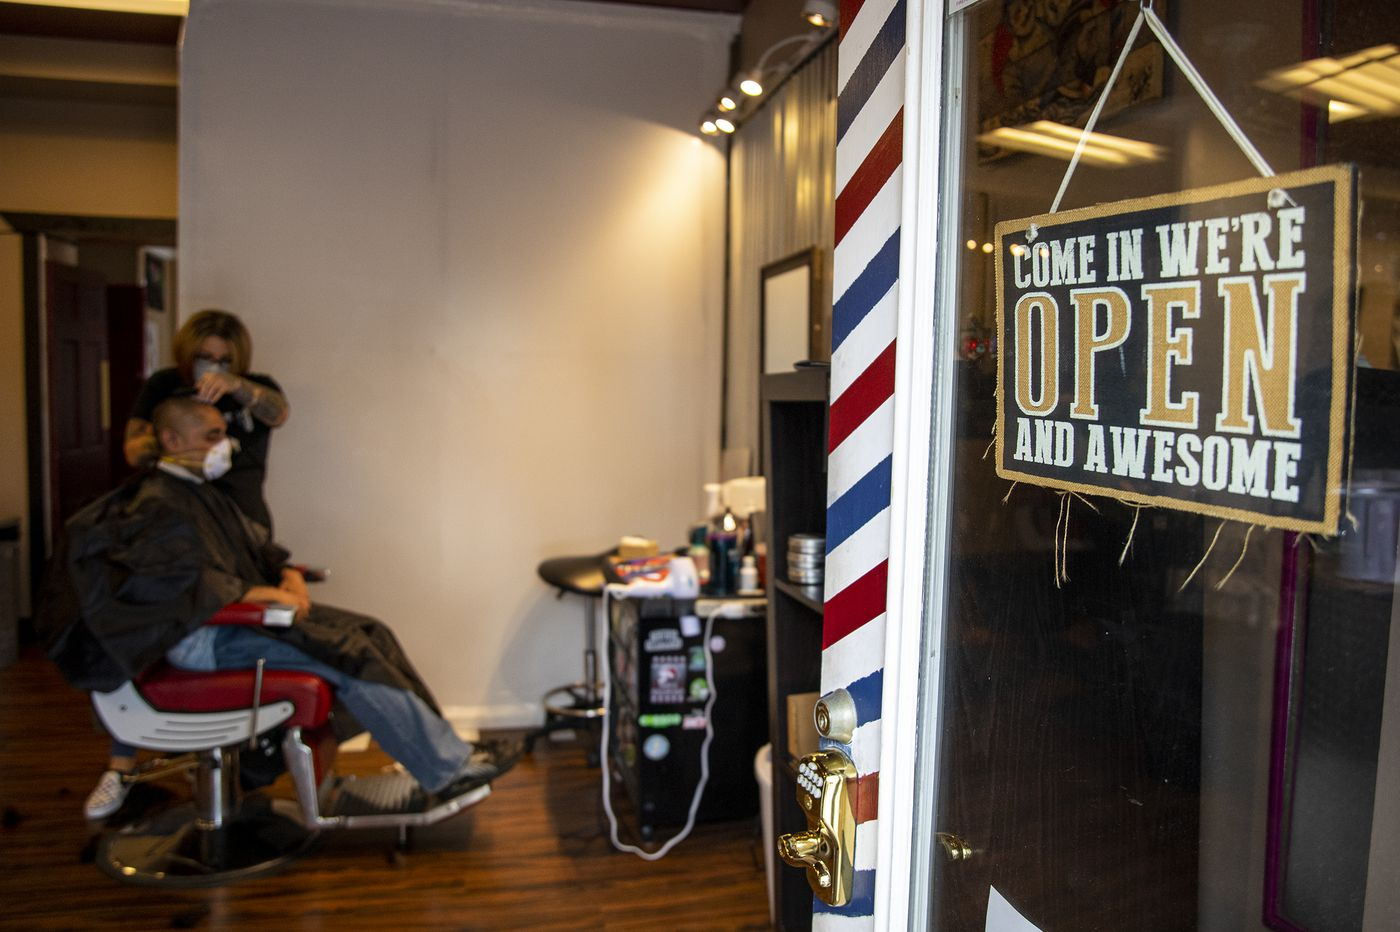 Media barbershop opens in defiance of Gov. Wolf's coronavirus shutdown orders, even though cases in Delaware County show no sign of flattening